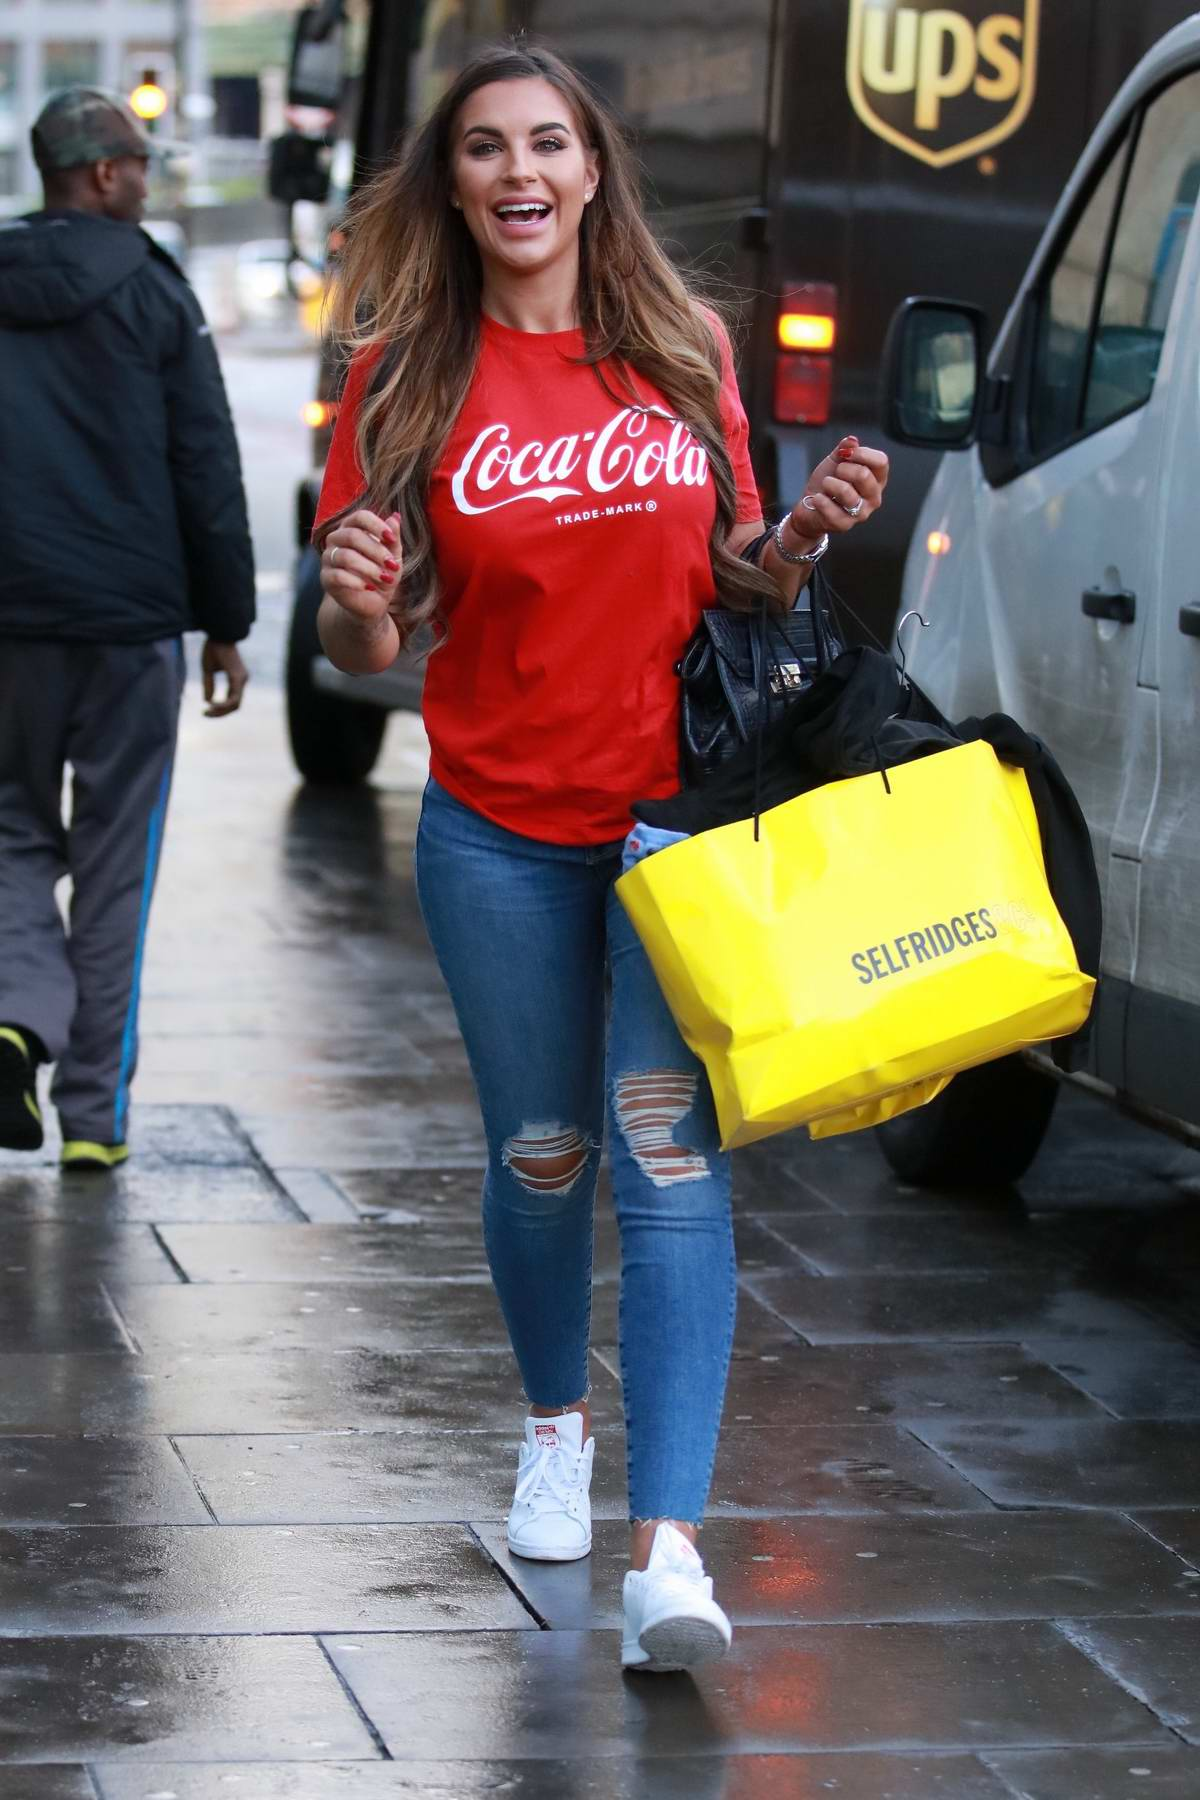 Jessica Shears wore a red coca cola t-shirts and ripped jeans while shopping in Manchester, UK